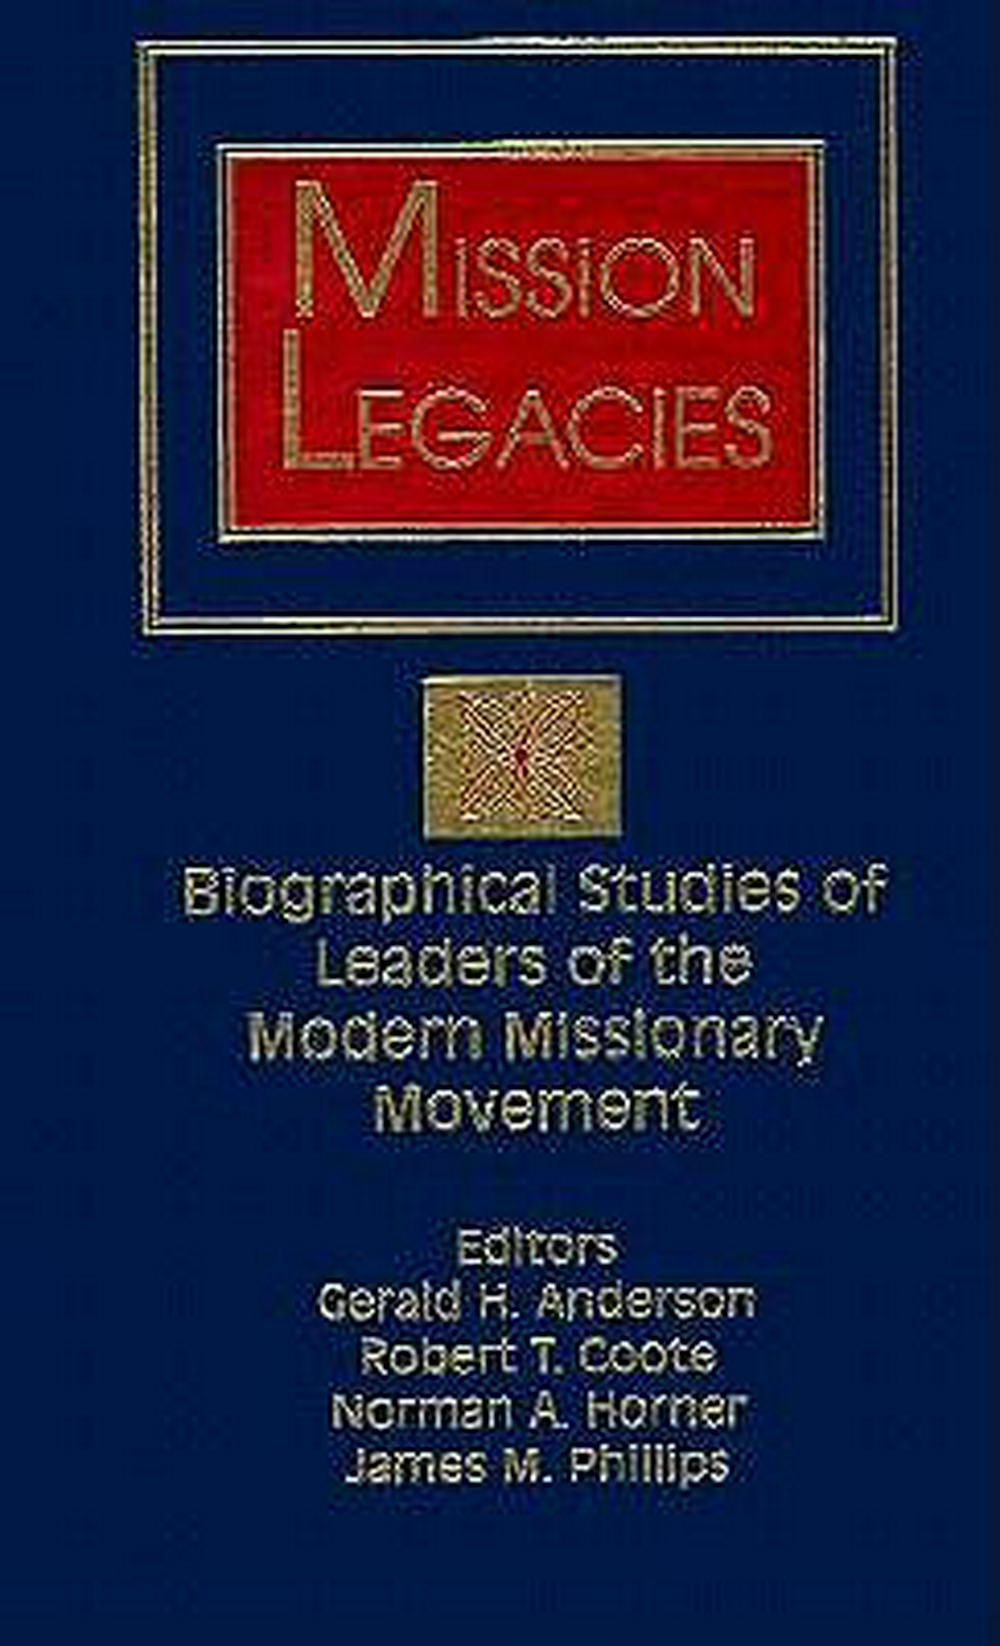 Mission Legacies: Biographical Studies of Leaders of the Modern Missionary Movement (American Society of Missiology)